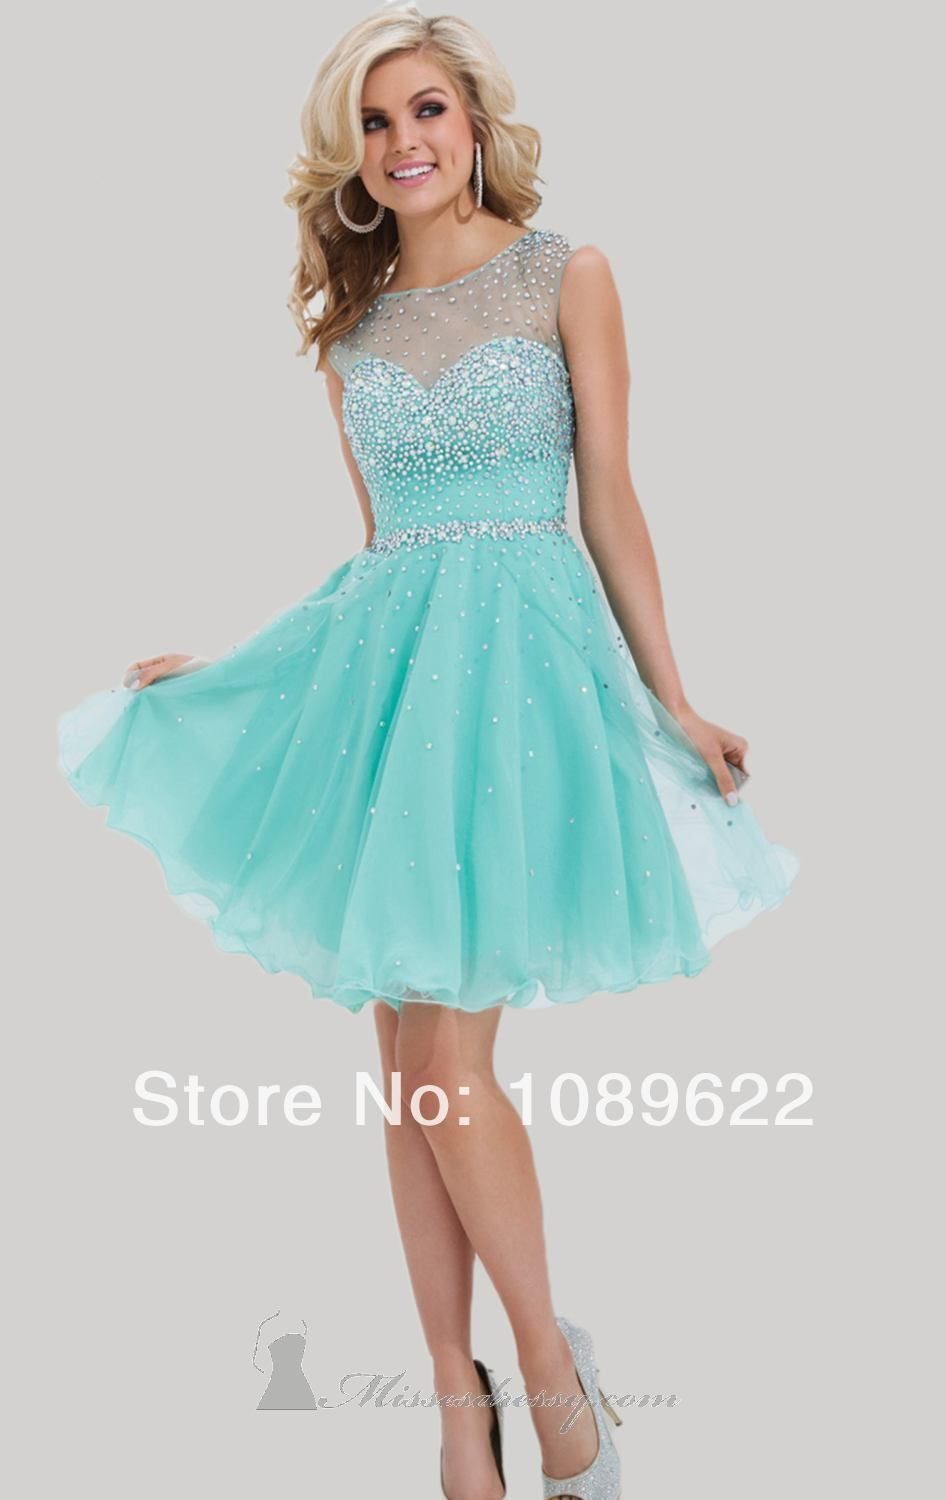 15 dresses for damas turquoise Google Search | Girls